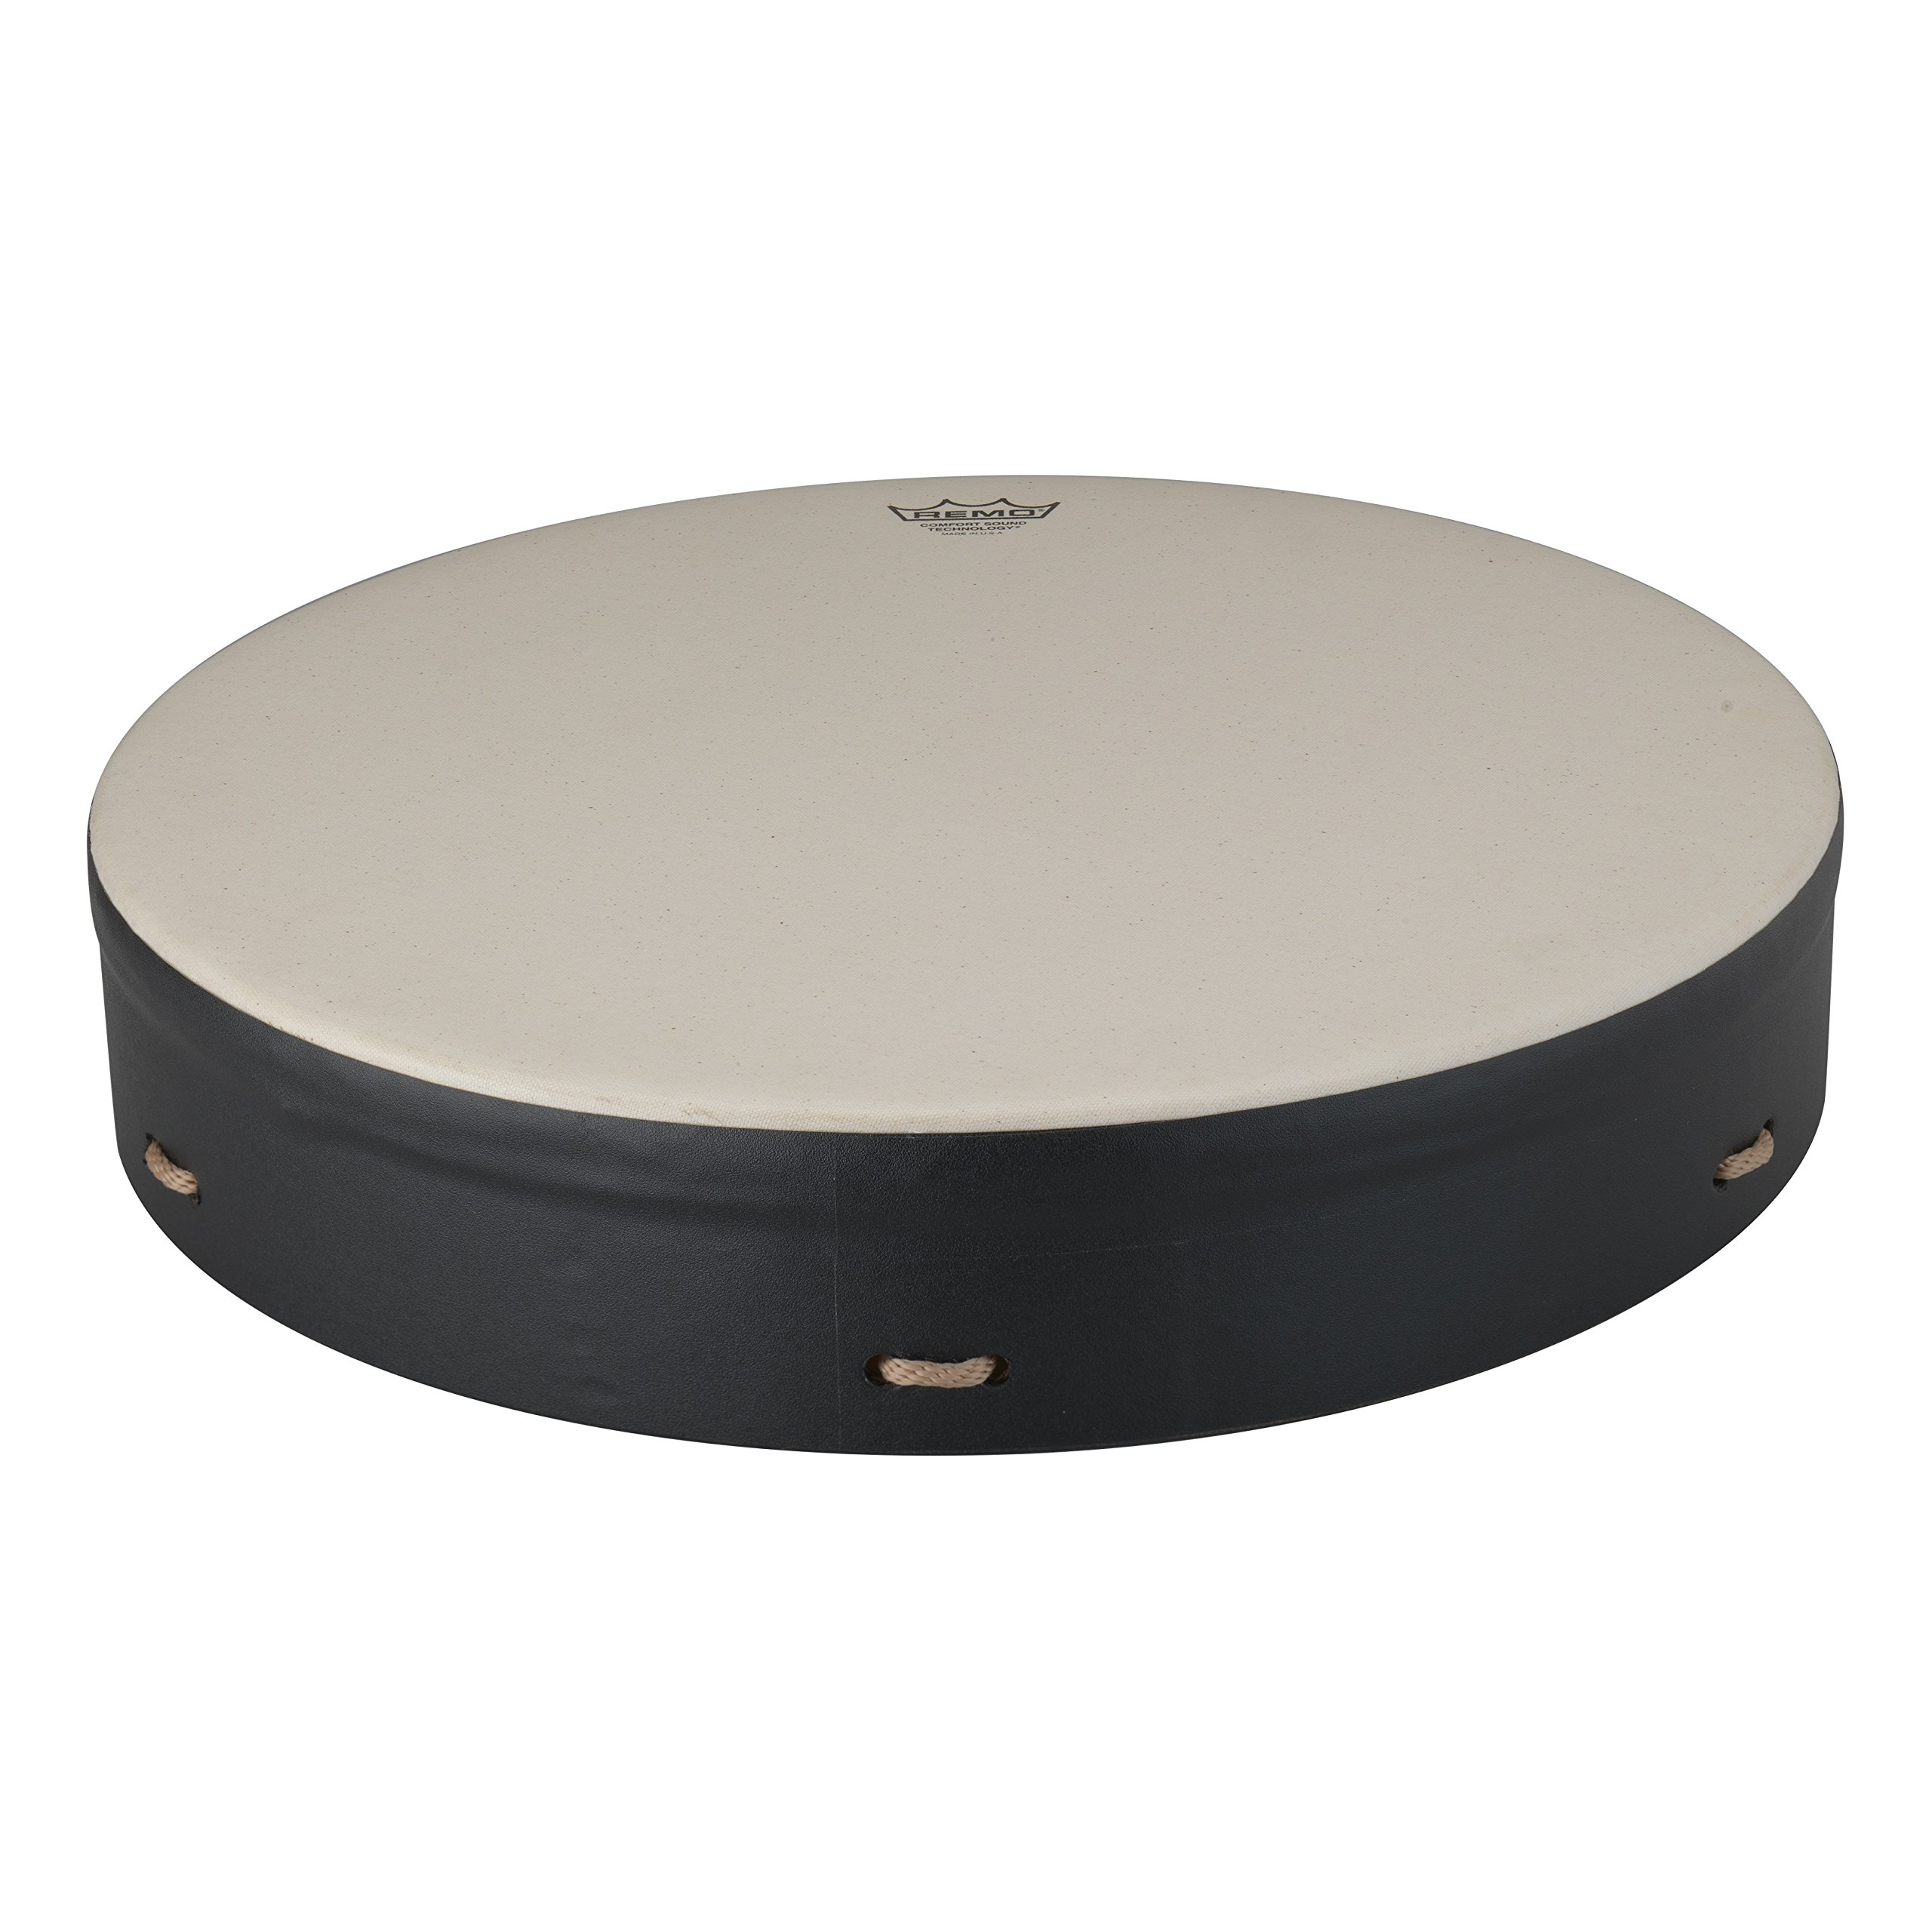 Remo Buffalo Drum with Comfort Sound Technology 16 in. Black by Remo